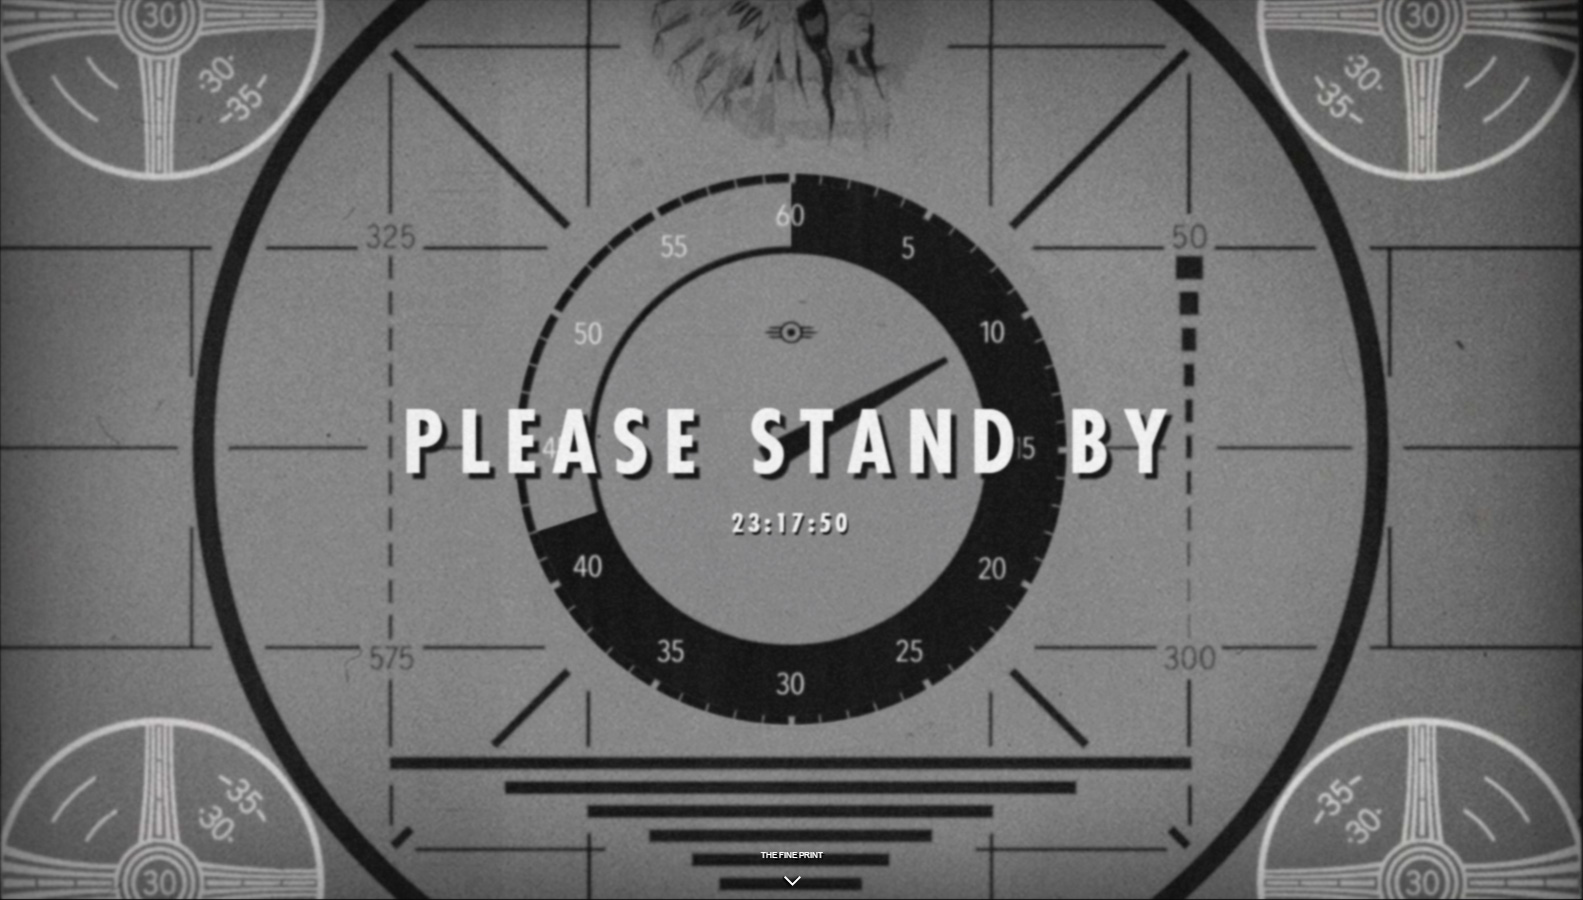 Fallout 4 runs better on the PlayStation 4 in testing, due to Xbox One stutter